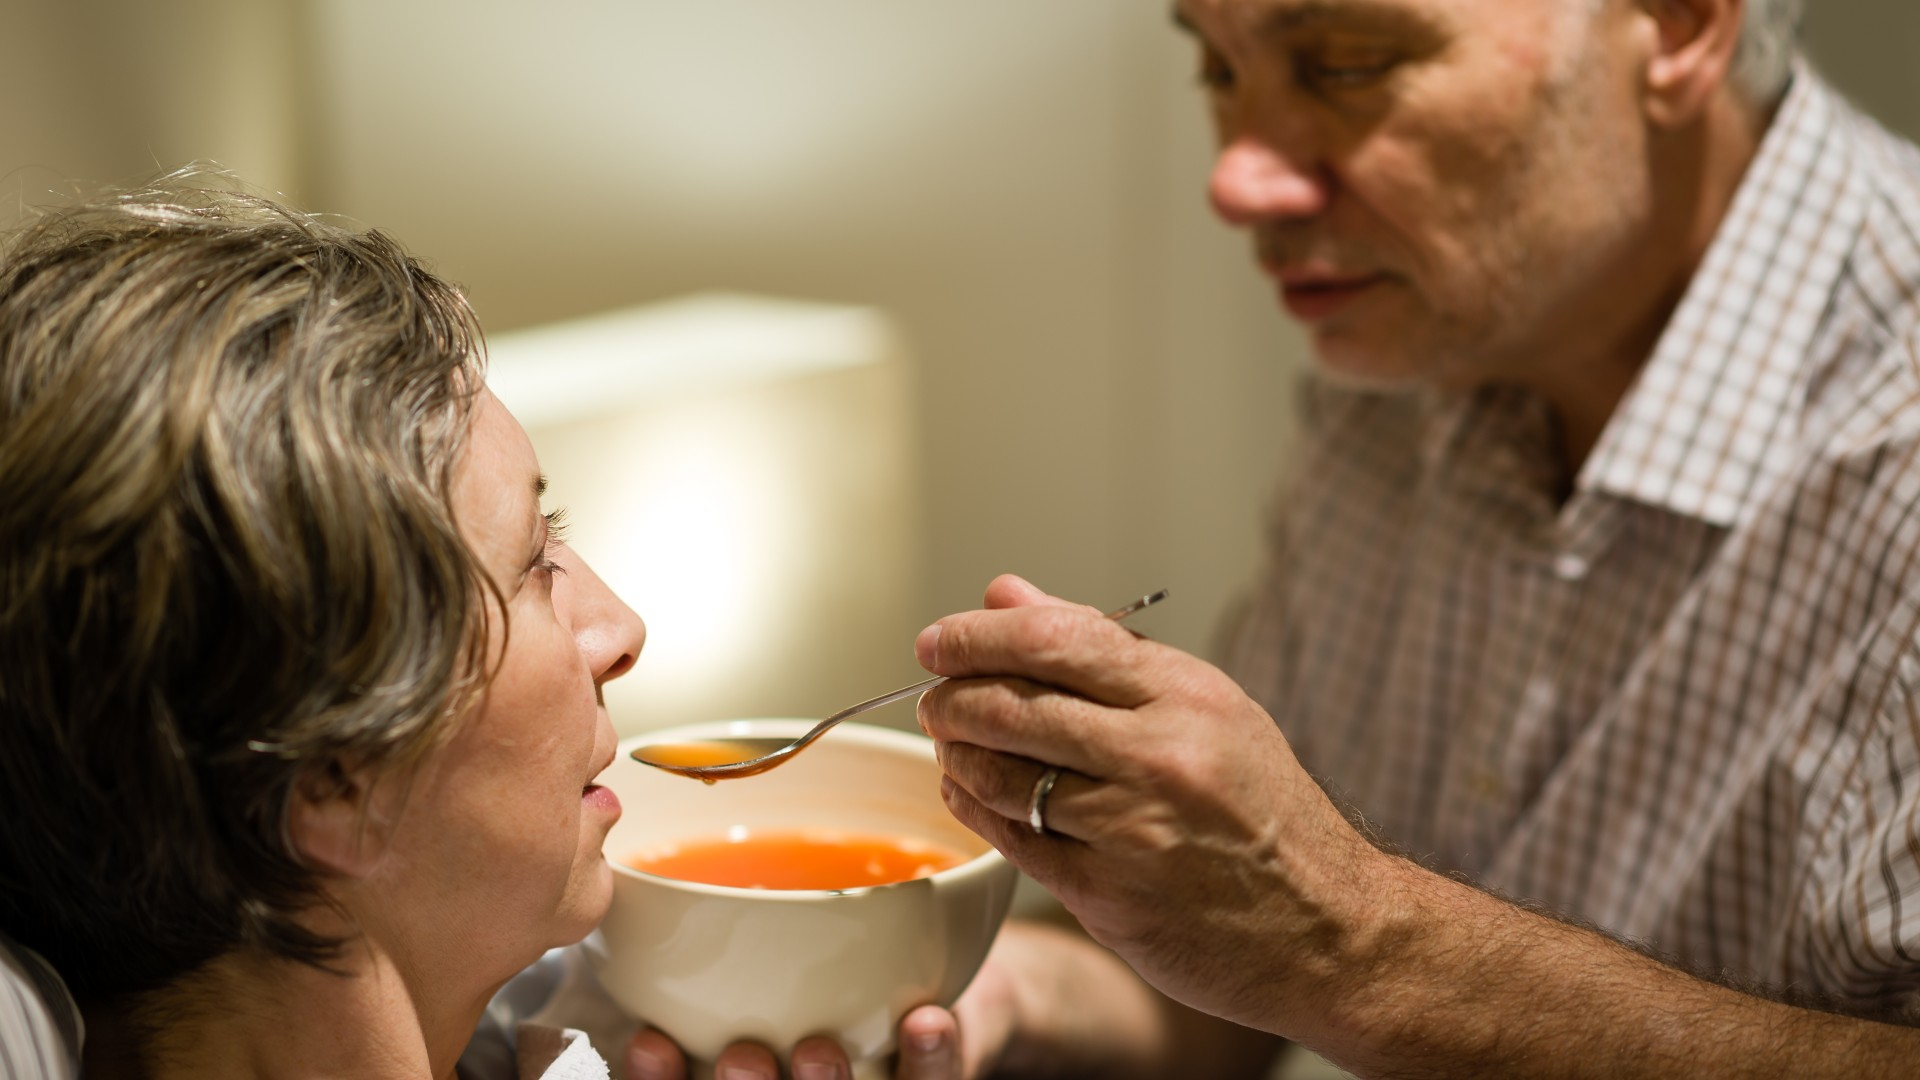 Husband feeding his wife some soup as she lies sick in bed